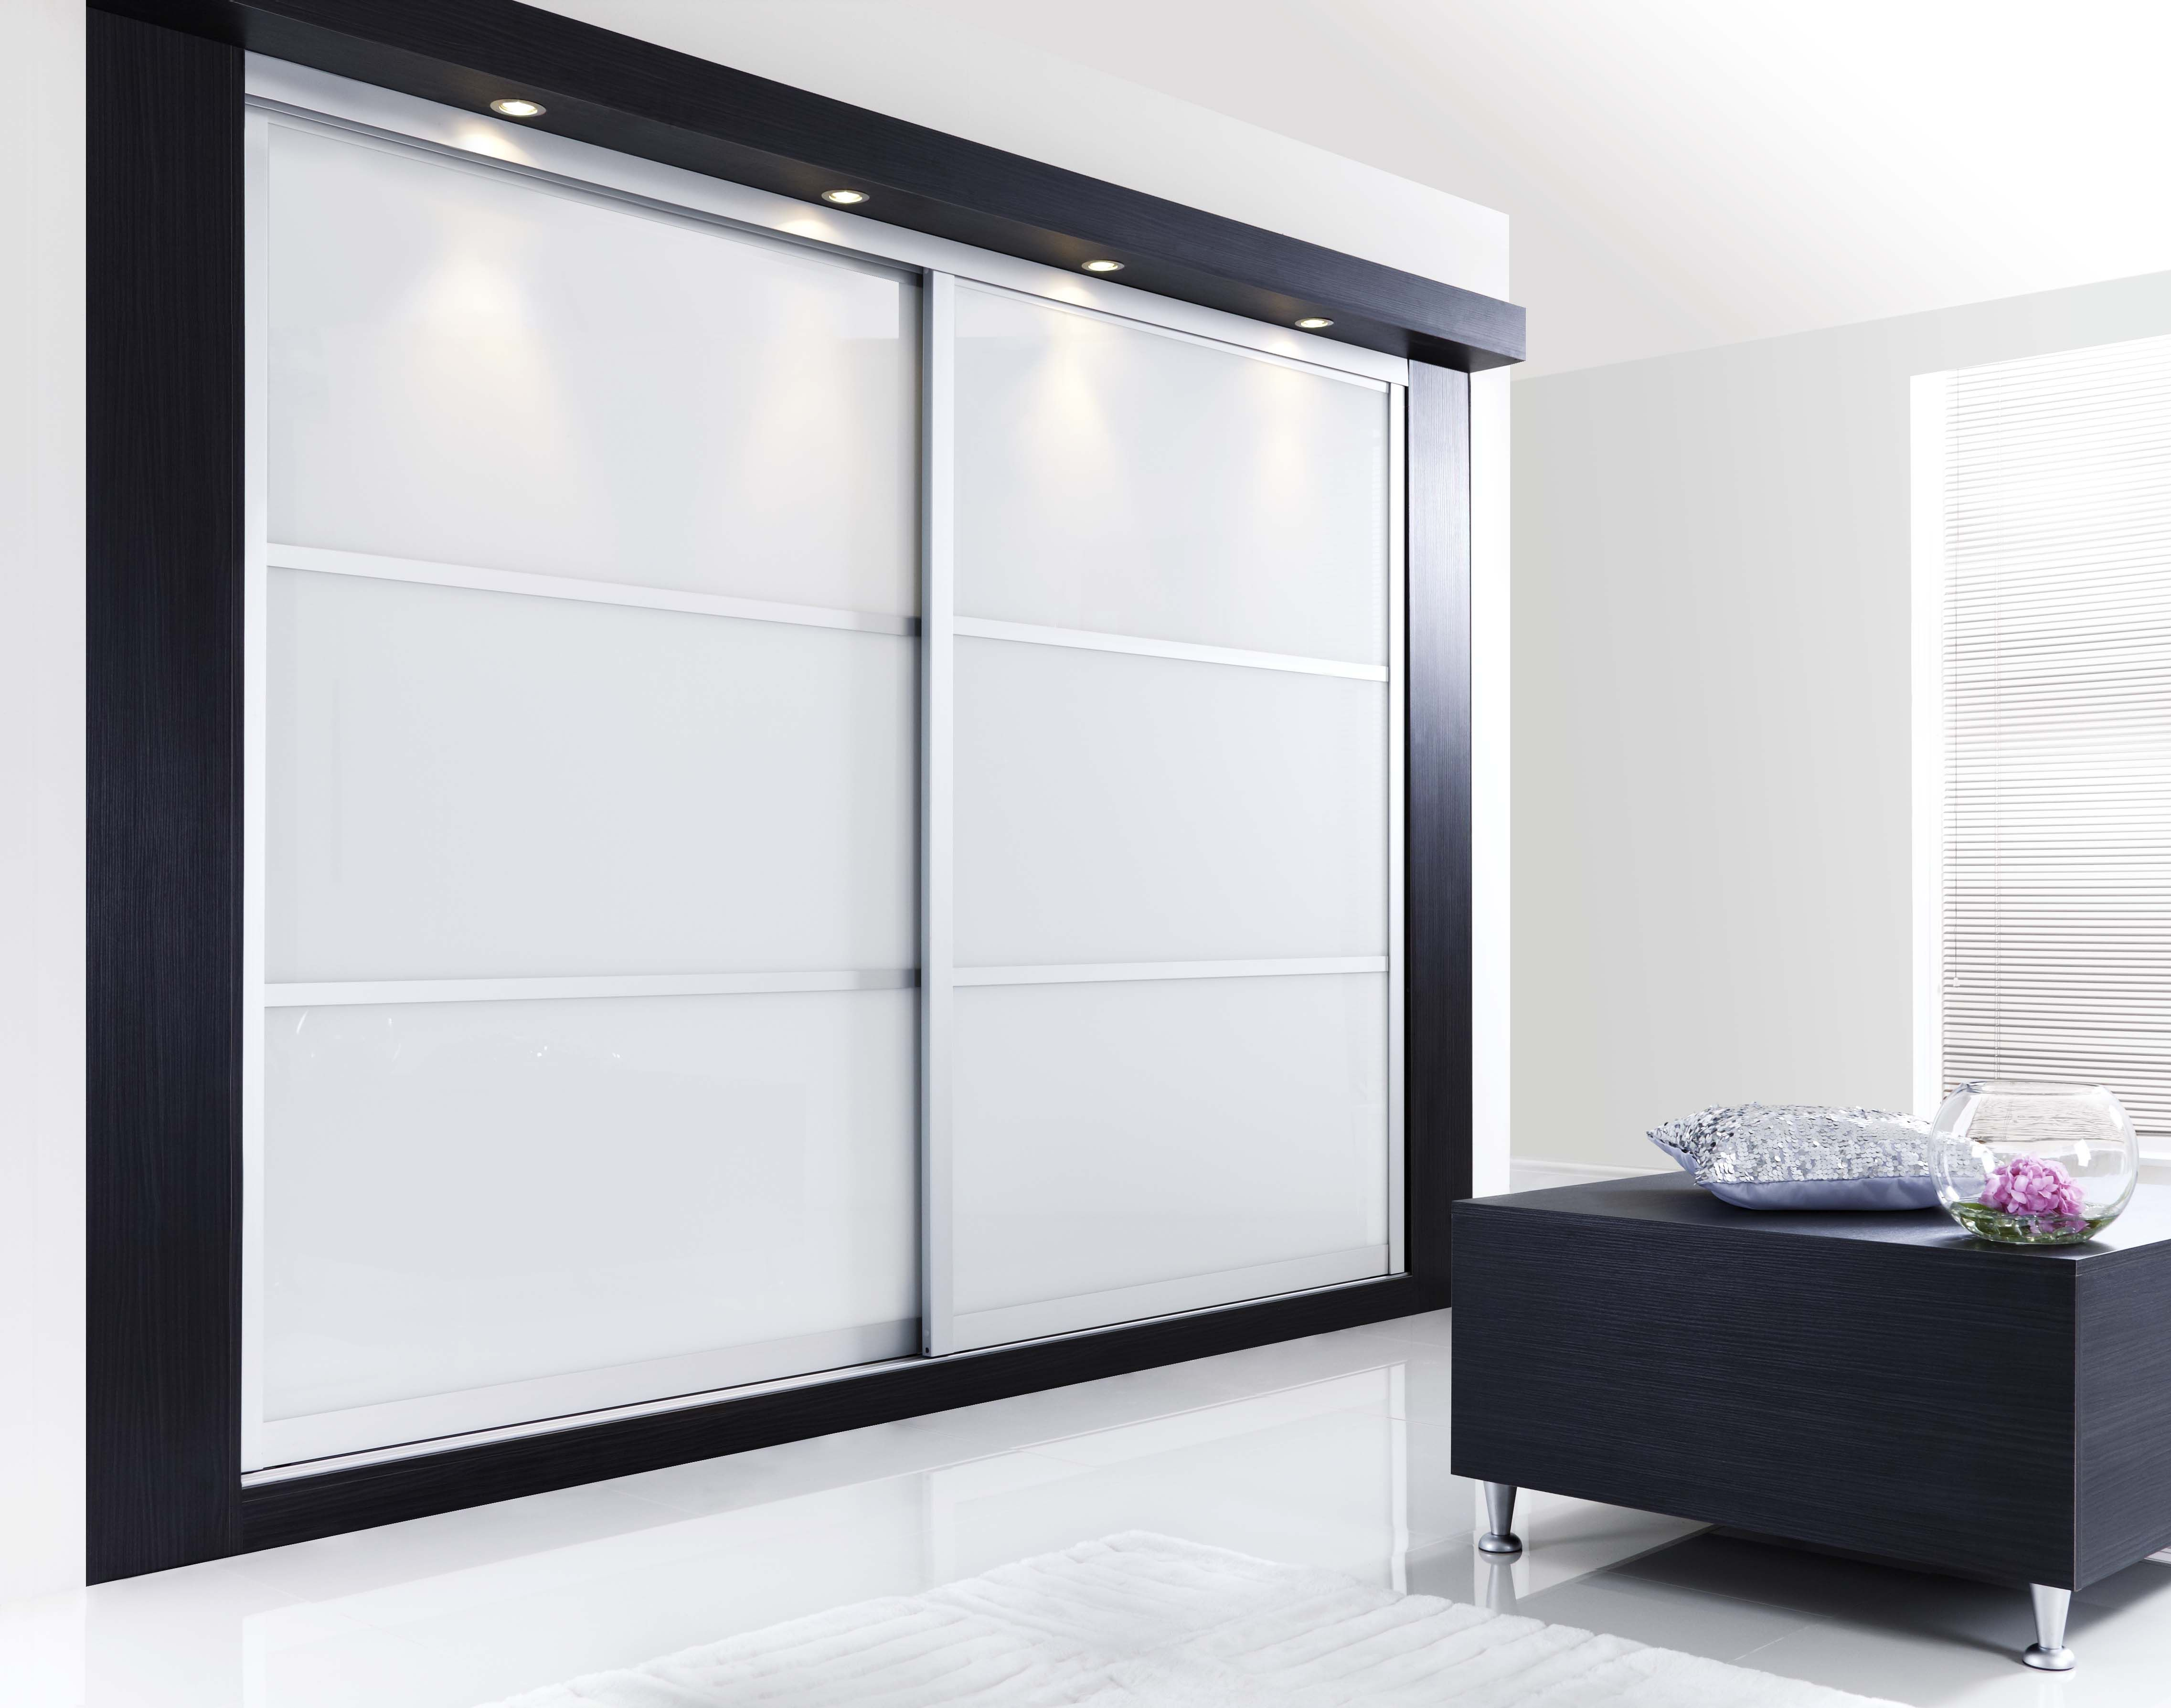 Contemporary Sliding Door Wardrobe [ Barndoorhardware.com ] #modern # Hardware #specialty